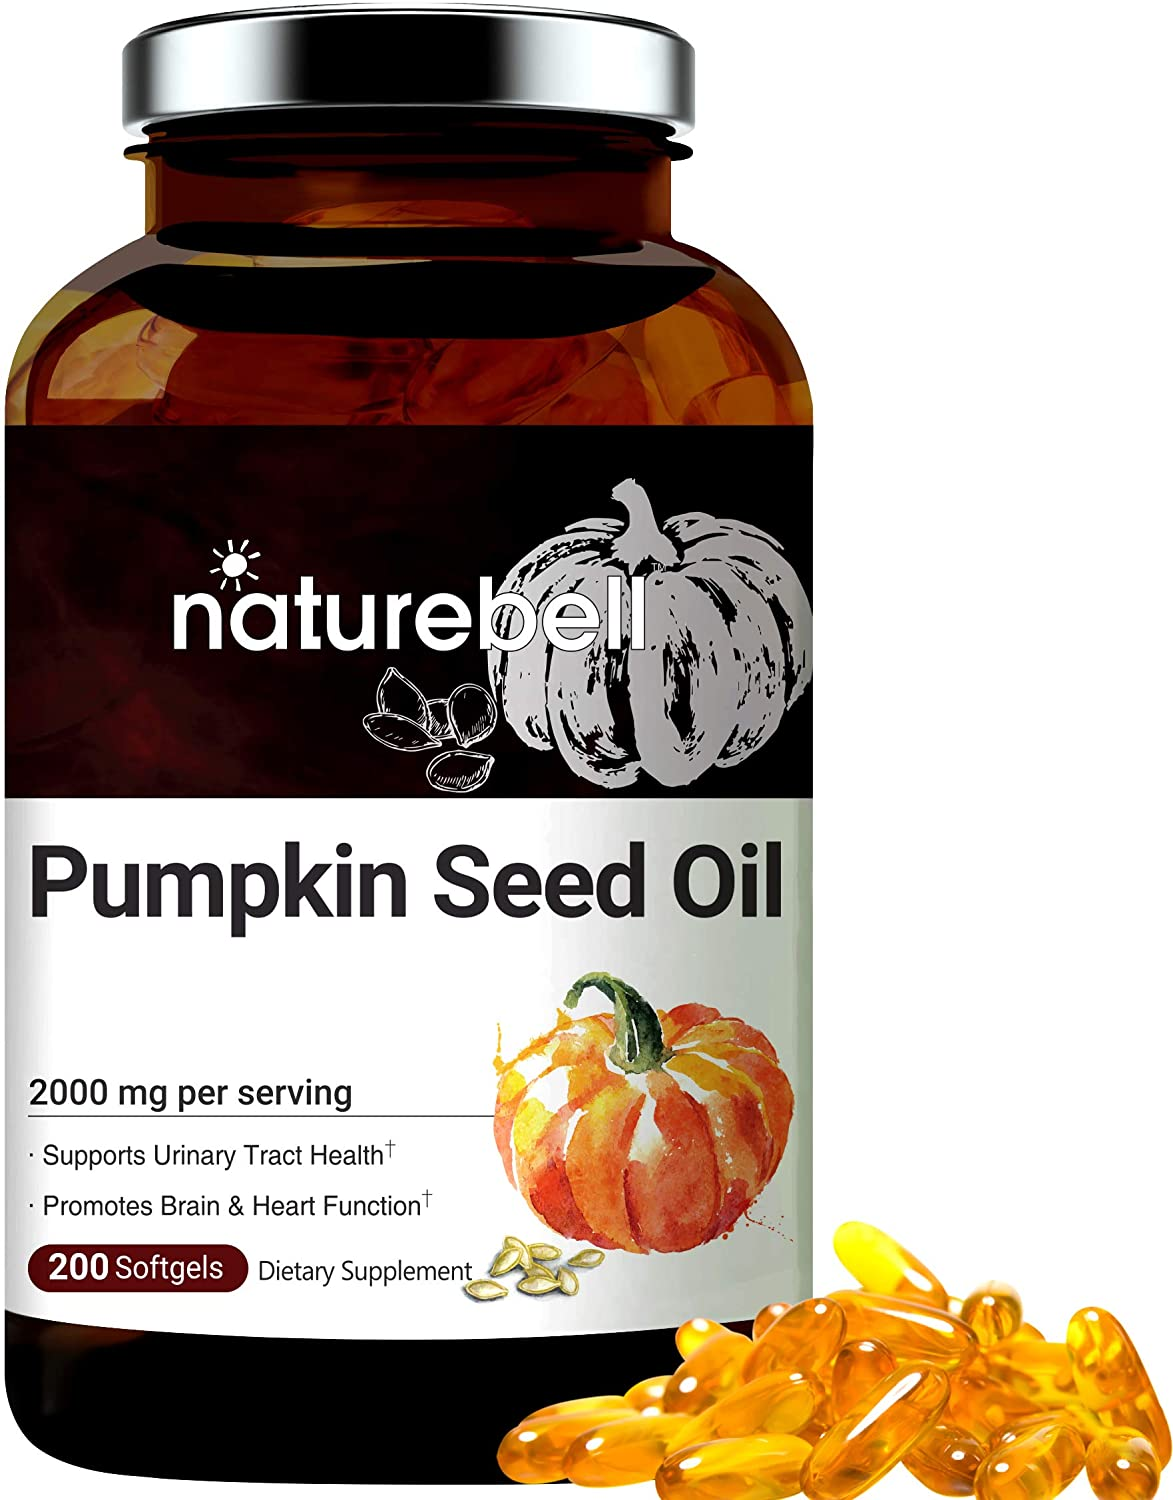 Maximum Strength Pumpkin Seed Oil Capsules 1000mg, 200 Liquid Soft-gels, Cold Pressed, Rich in Omega 3 6 Essential Fatty Acids, No GMOs and Made in USA